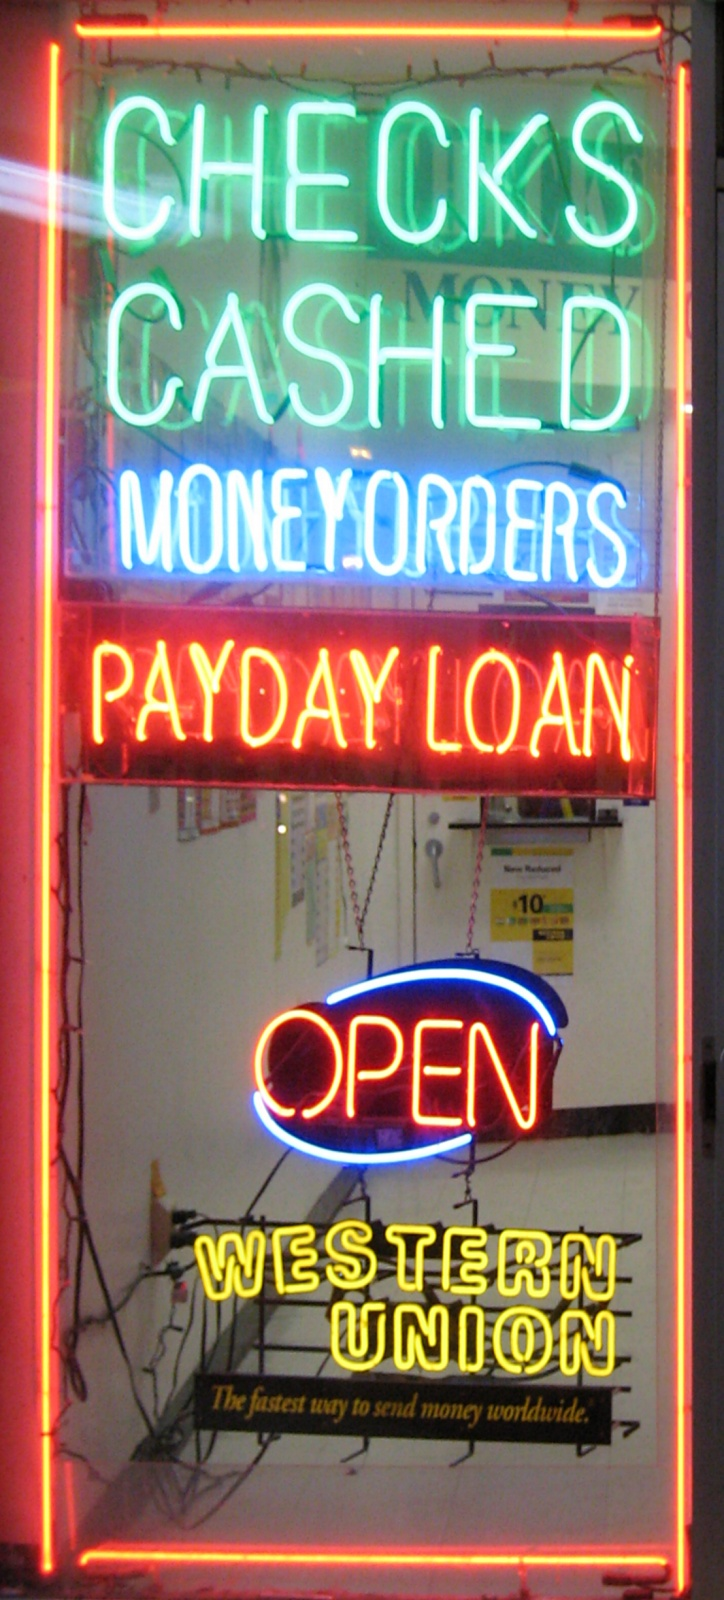 Payday_loan_shop_window.jpg